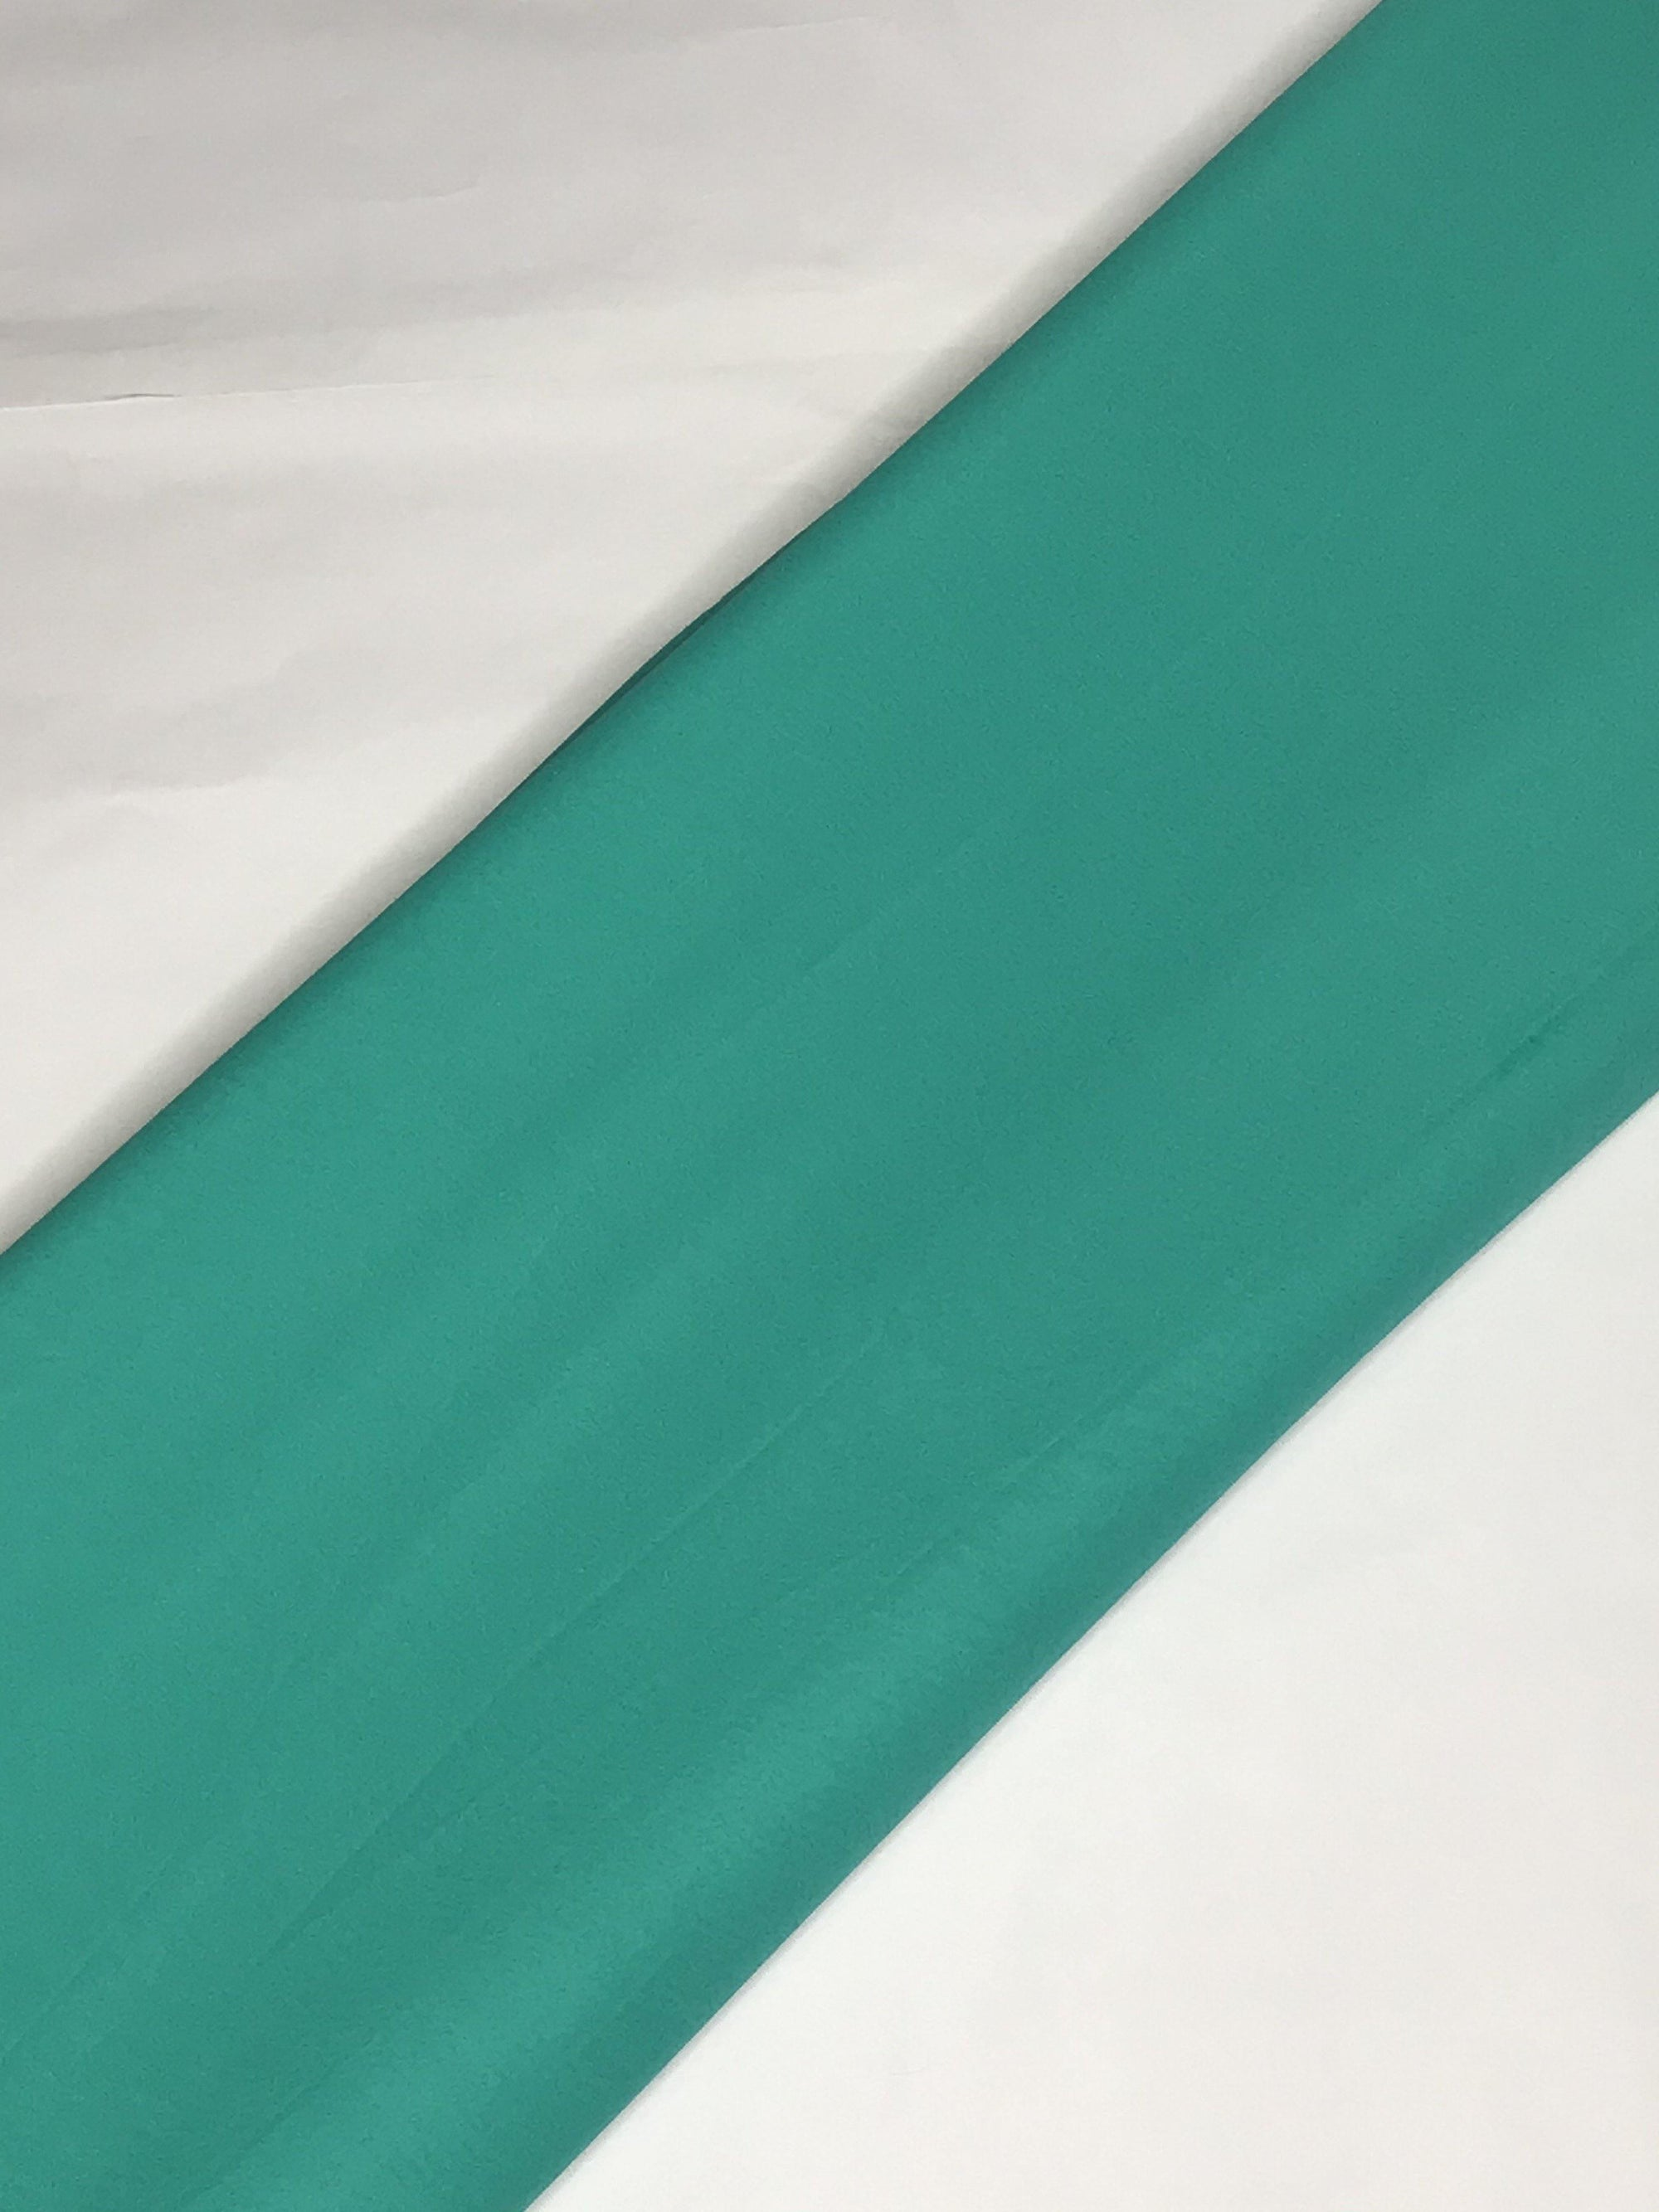 Aqua Blue Georgette Plain Dyed Fabric (Width - 44 inches)